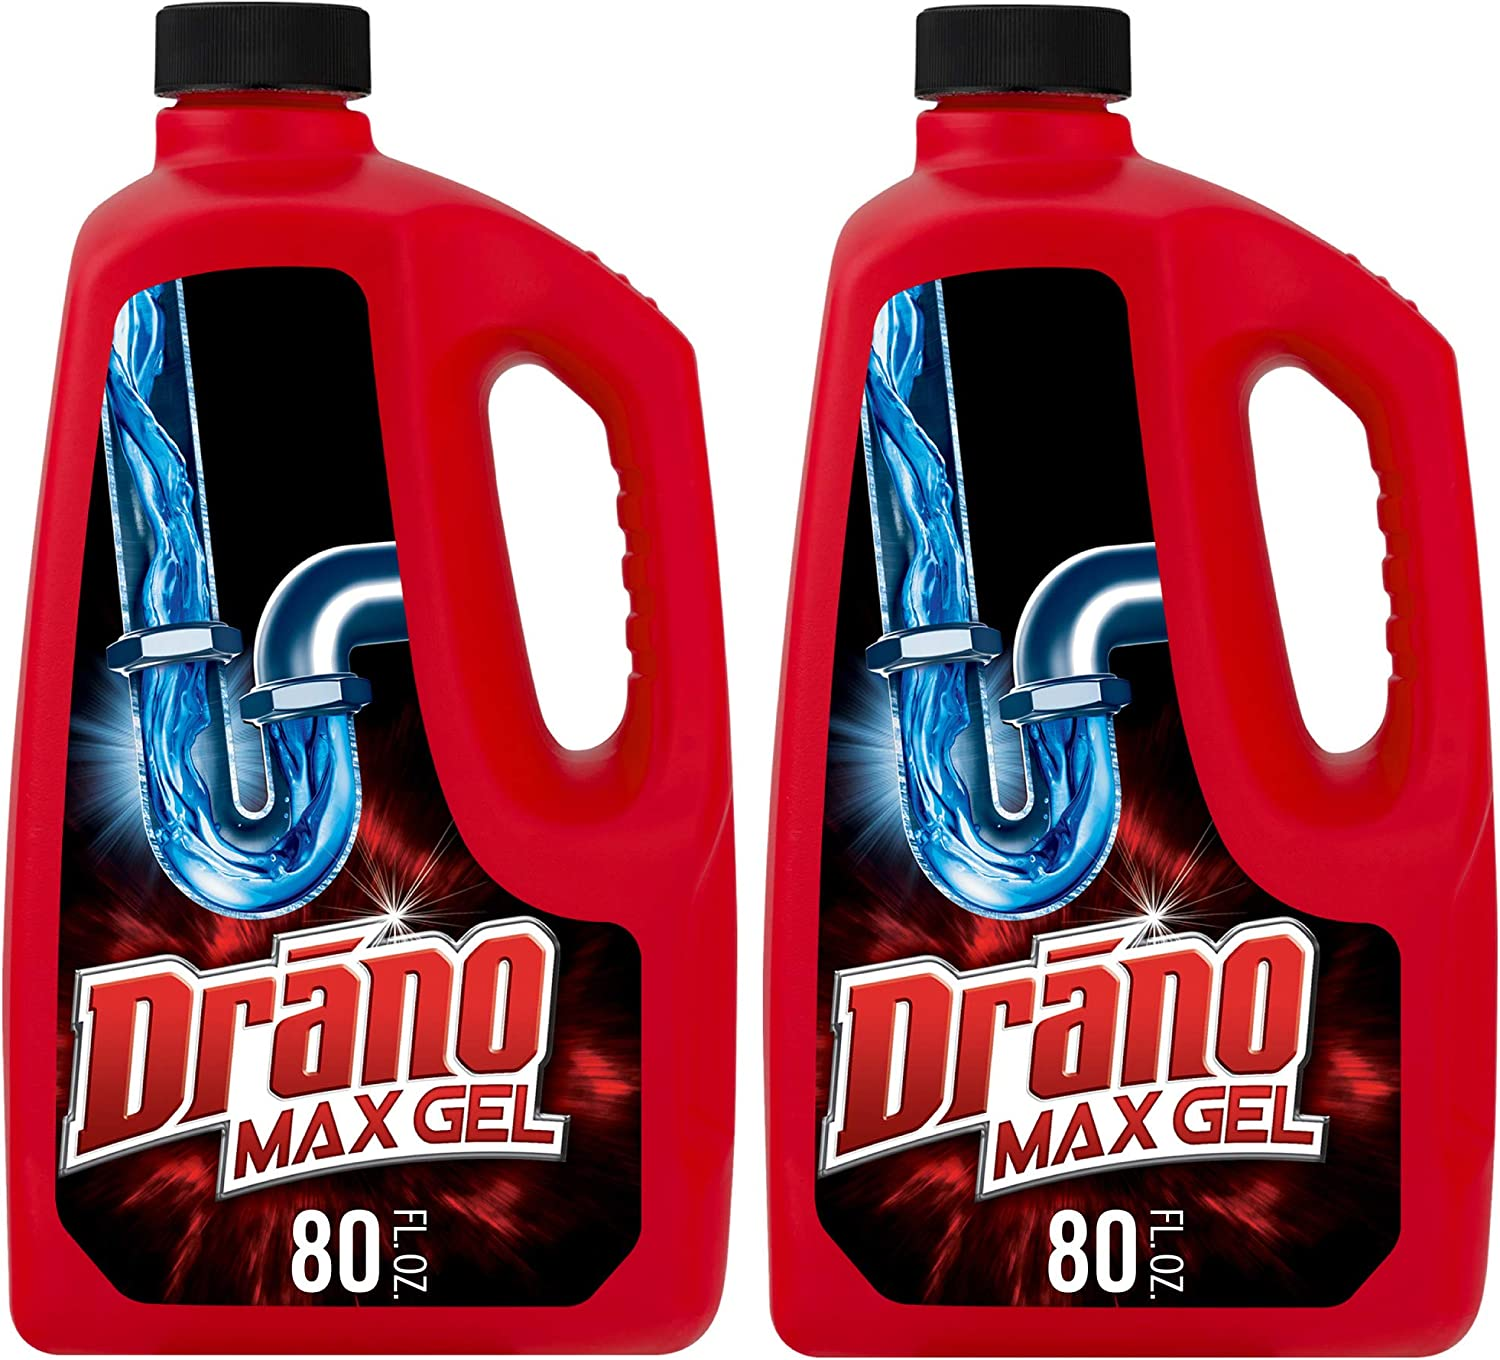 Drano Max Gel Drain Clog Remover and Cleaner for Shower or Sink Drains, Unclogs and Removes Hair, Soap Scum, Blockages, 80 oz- Pack of 2: Health & Personal Care